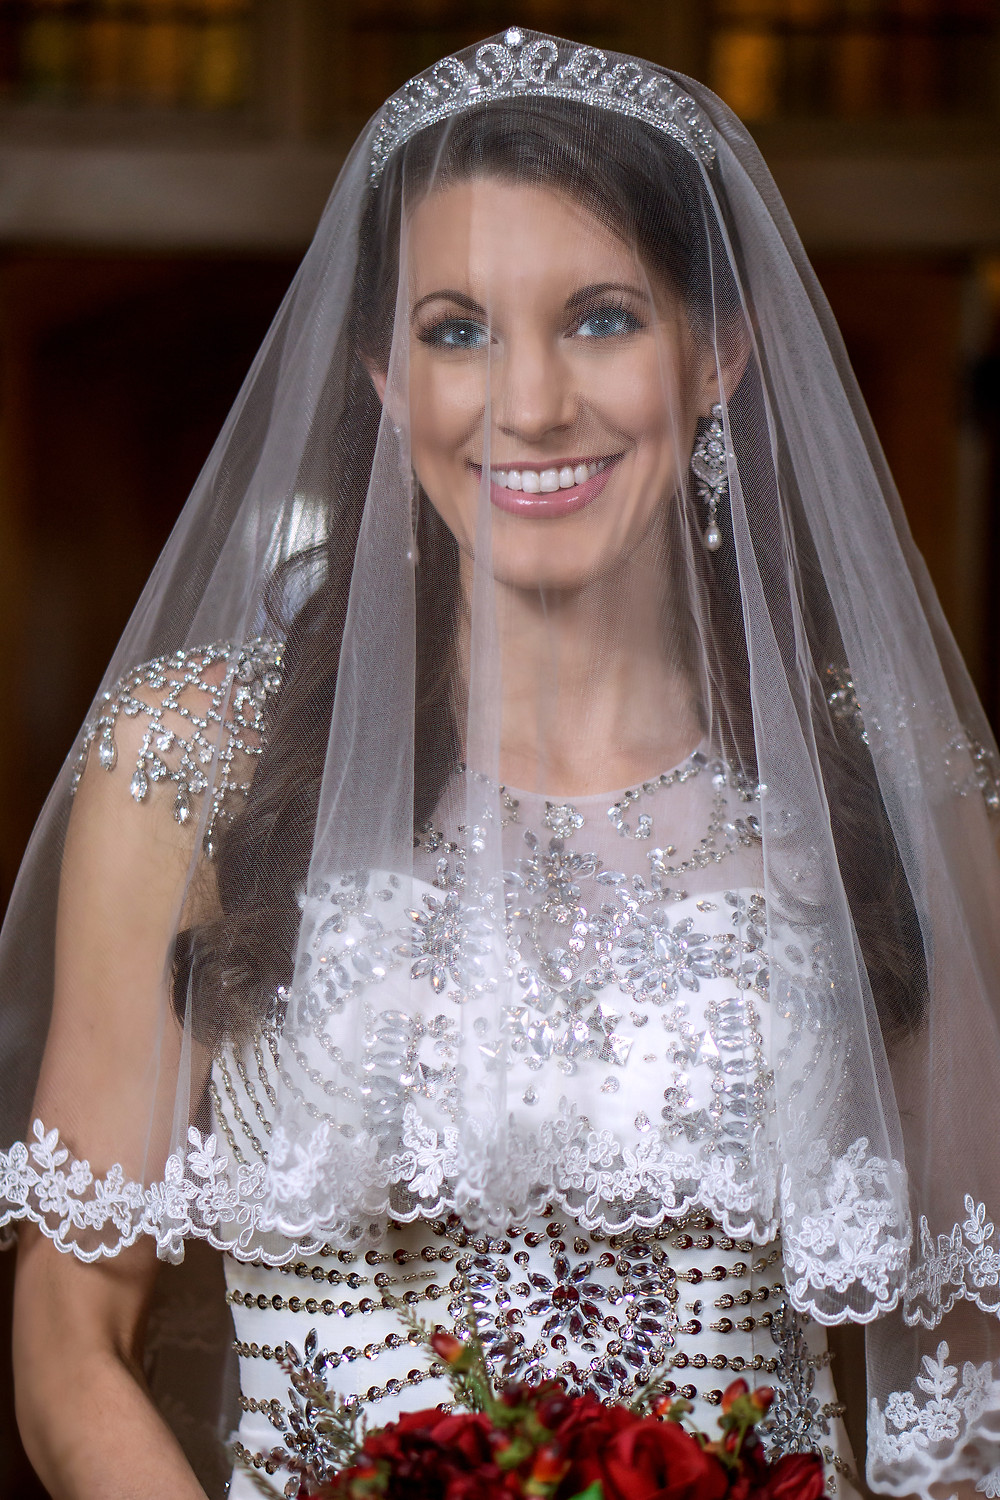 Smiling Bride wears crown and veil close-up